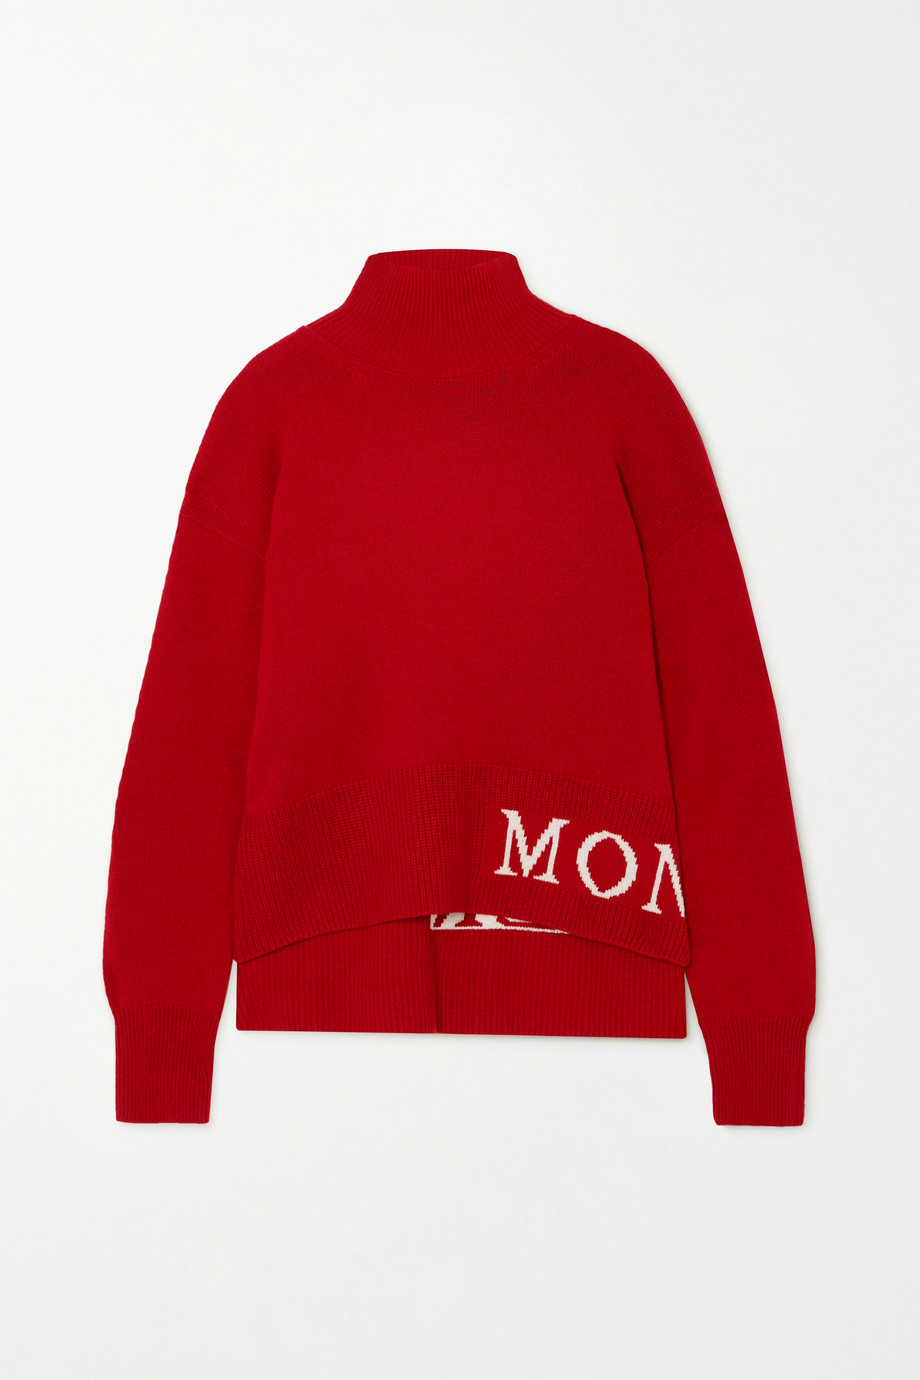 Moncler Intarsia wool and cashmere-blend turtleneck sweater